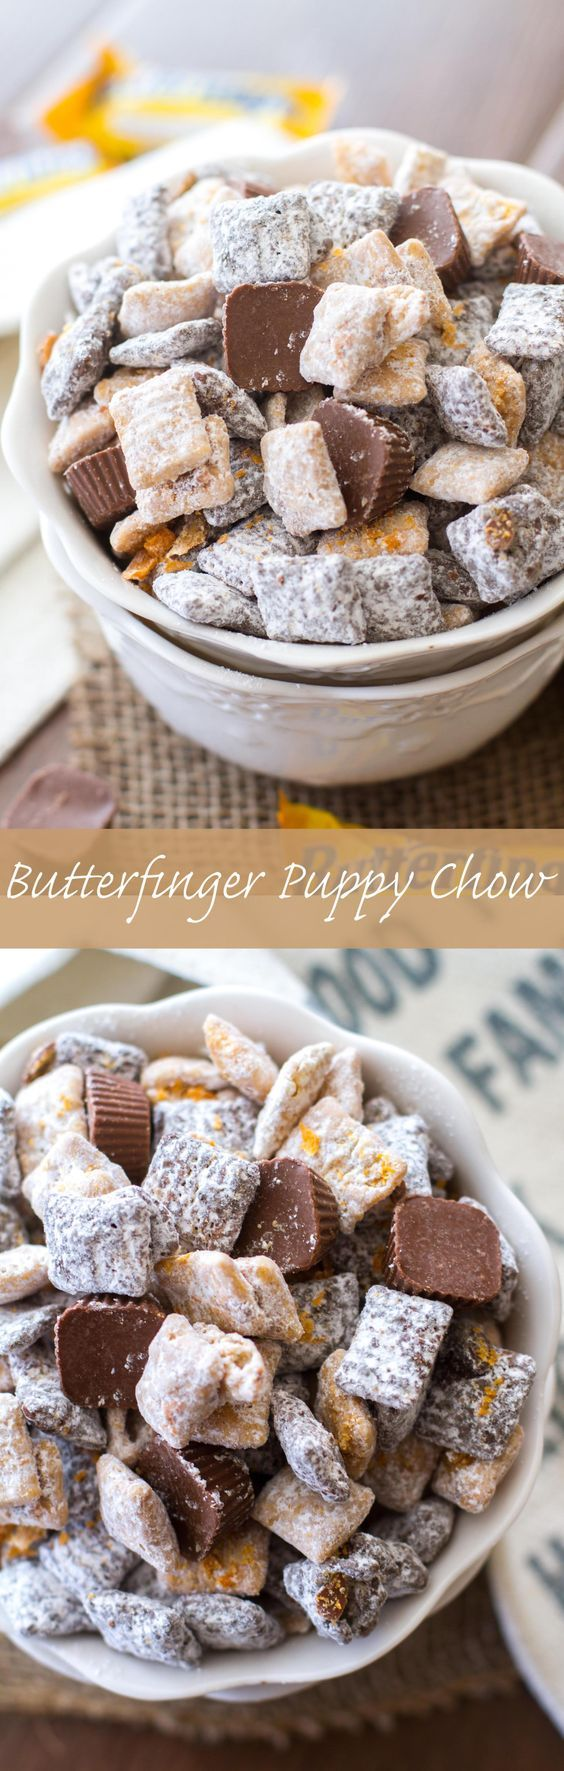 This easy puppy chow recipe is full of chocolate peanut butter and both Butterfinger Fun-Sized Candy Bars and Butterfinger Peanut Butter Cup Minis!